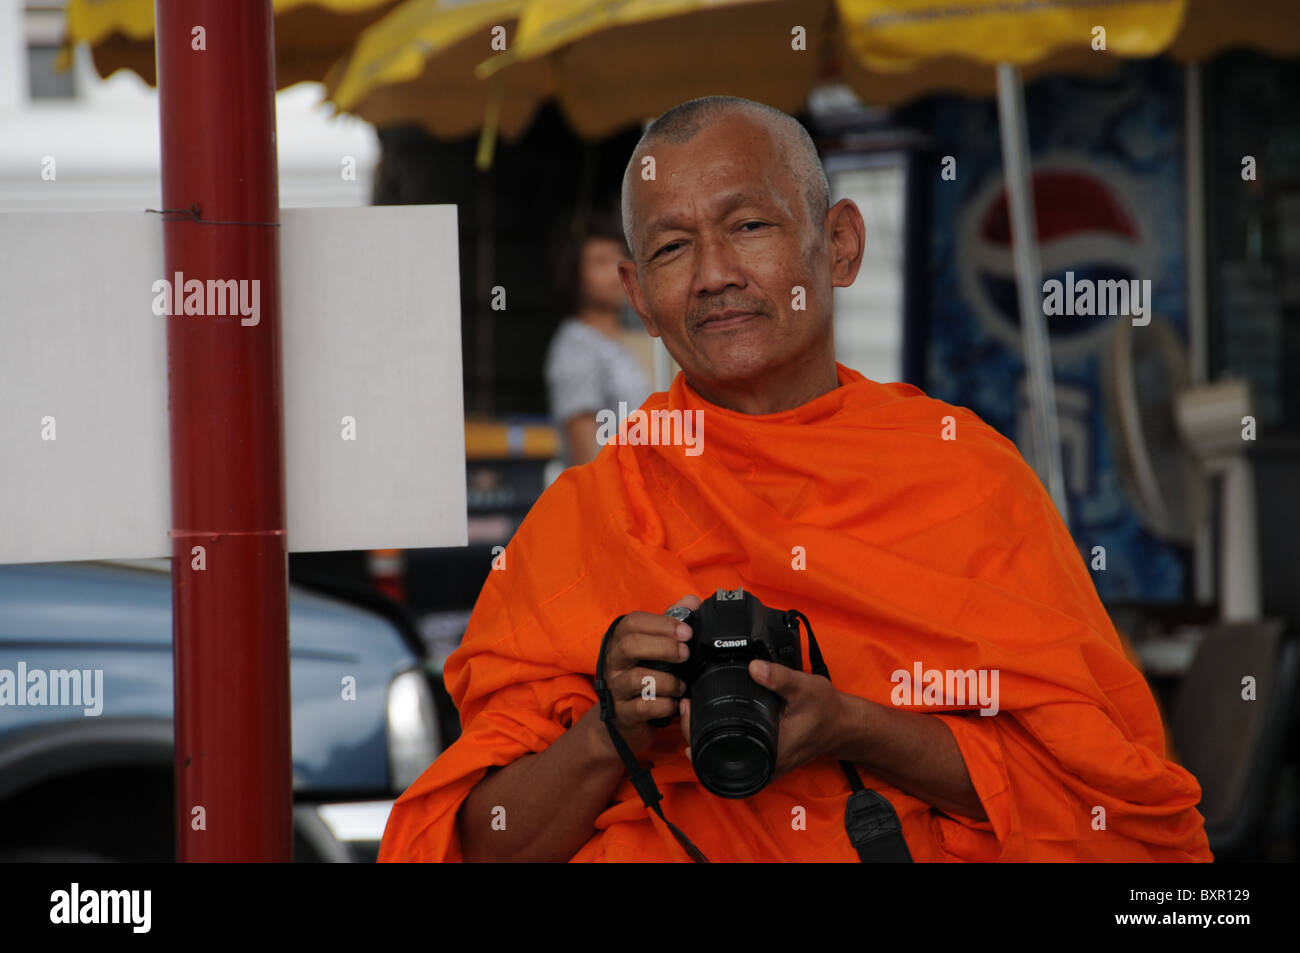 Old Buddhist Monk with Photocamera - Stock Image